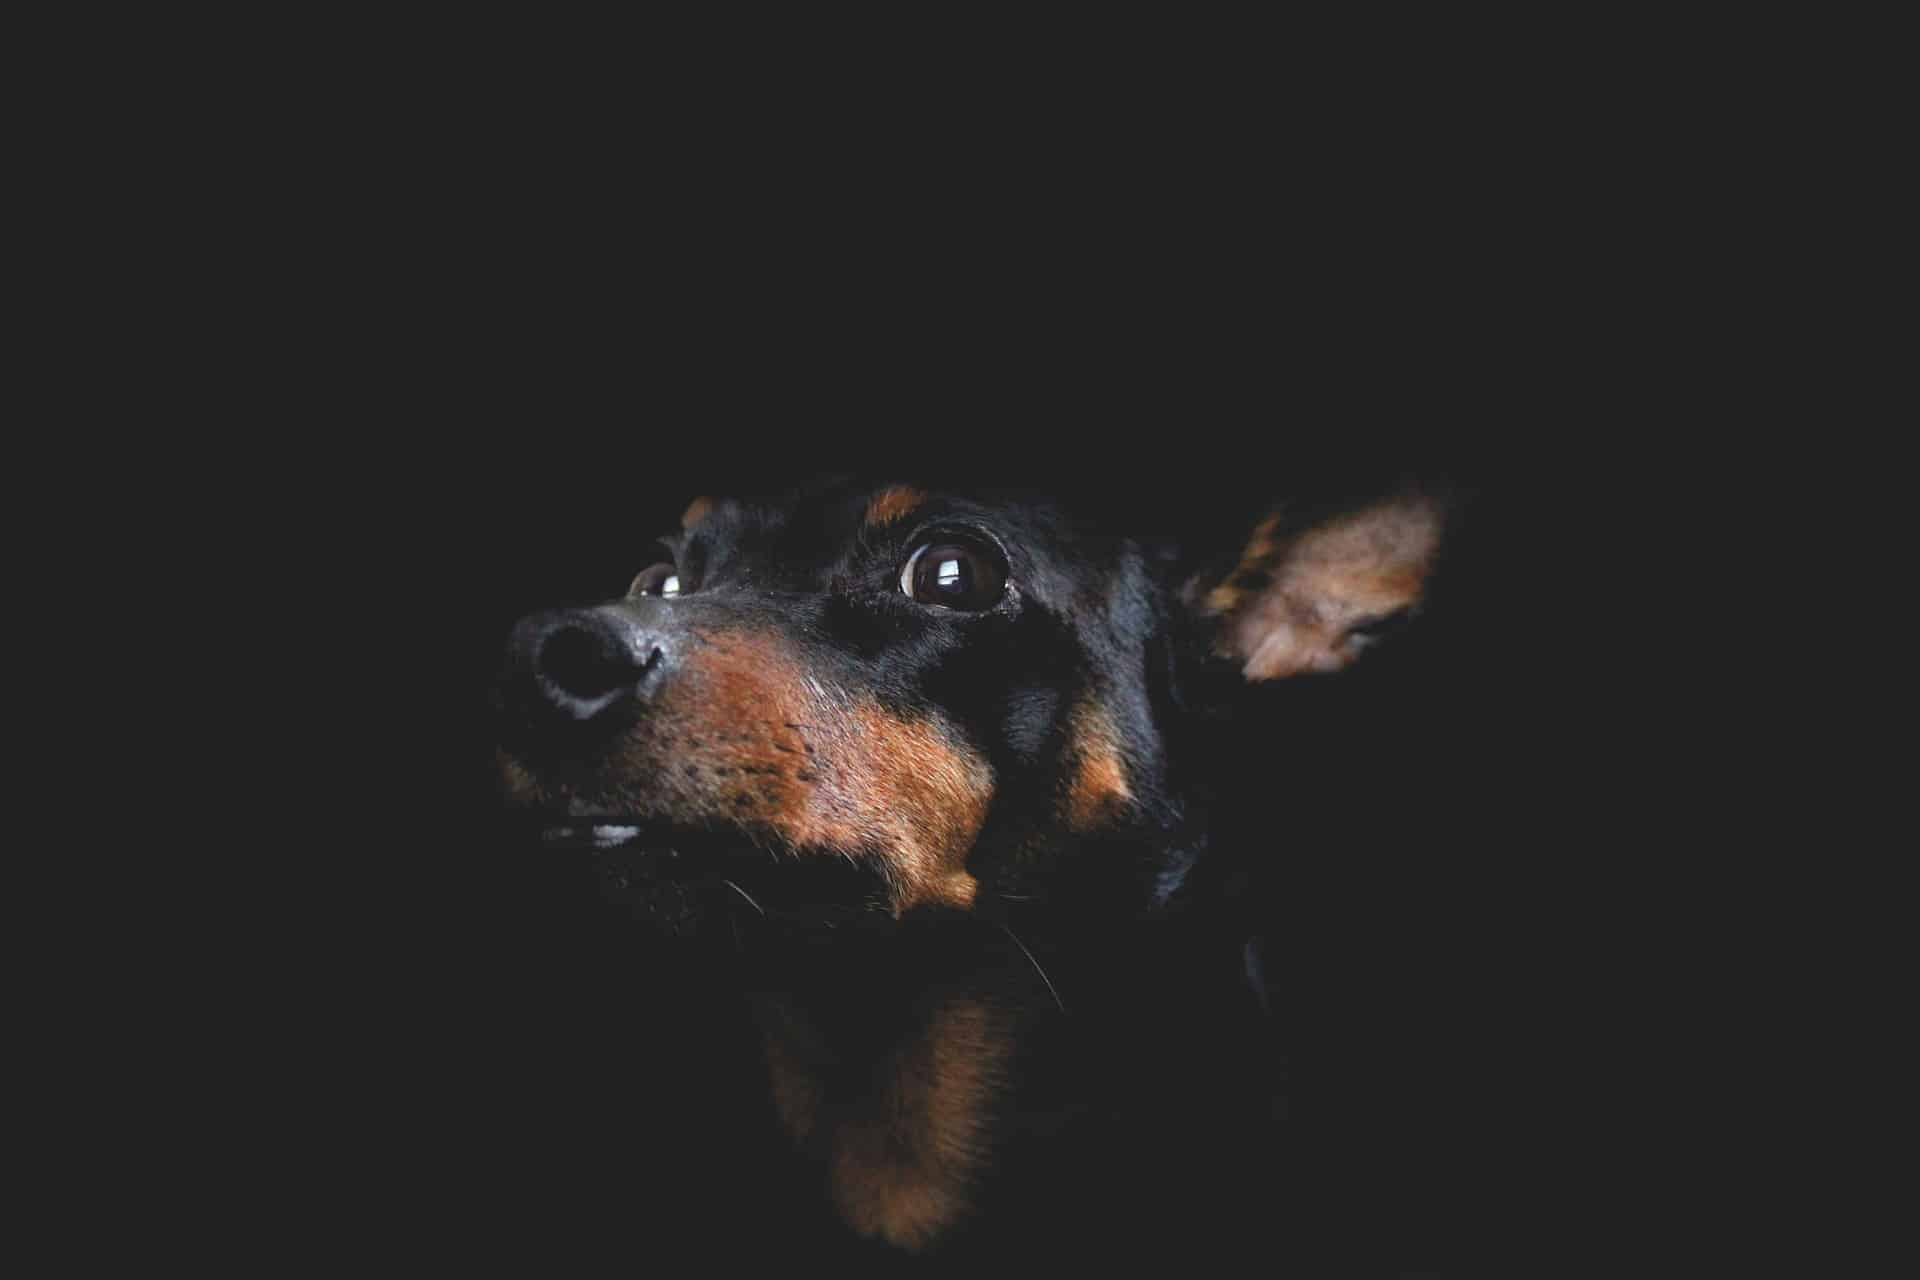 Taking Better Low-Light Pet Photos Using ISO 3